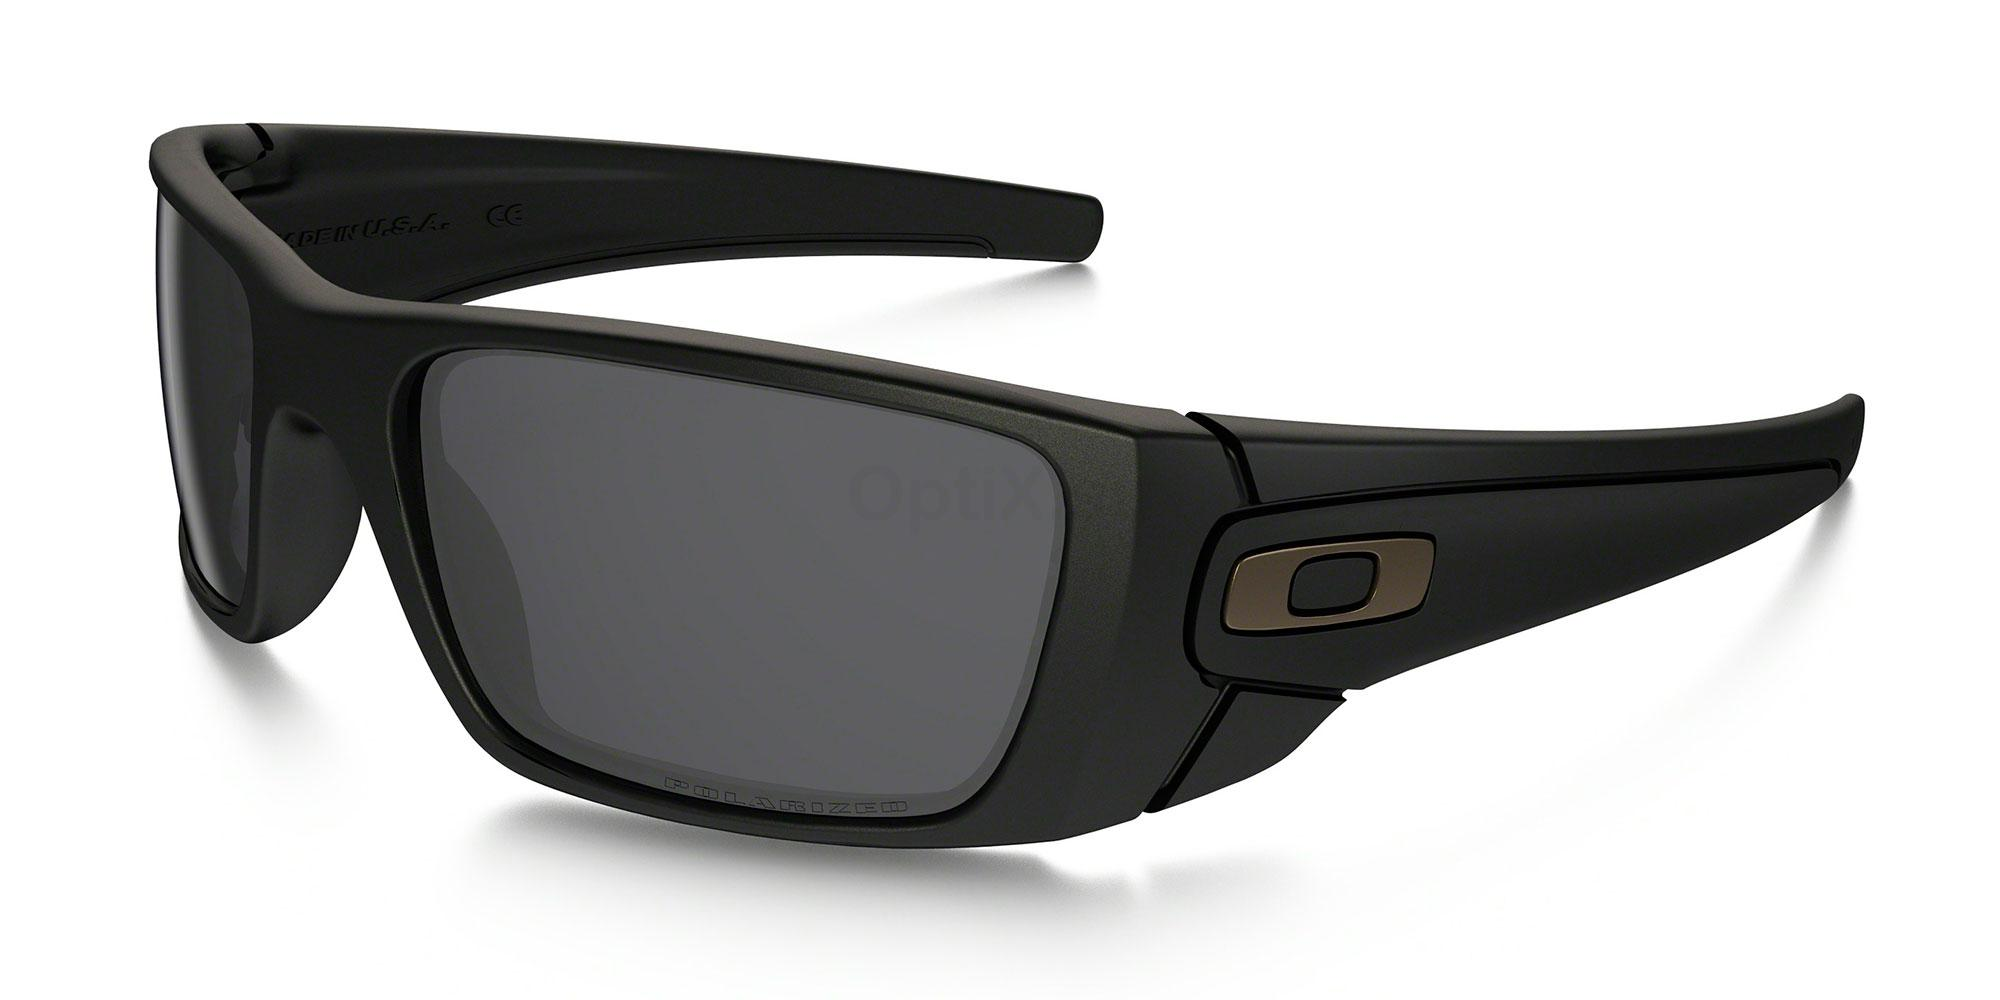 909605 OO9096 FUEL CELL (Polarized) Sunglasses, Oakley